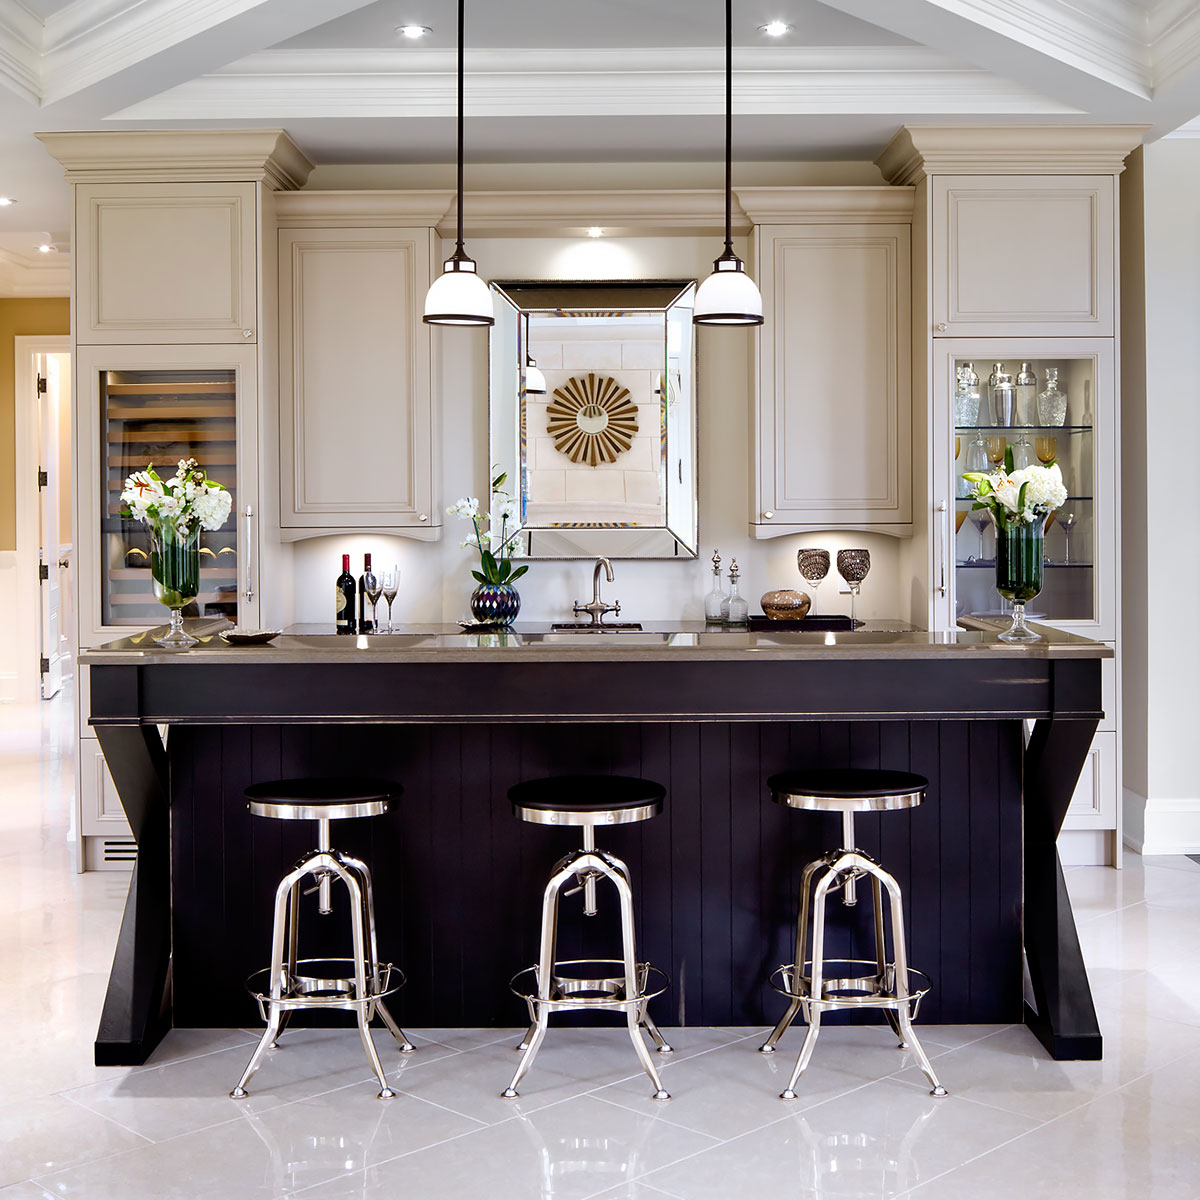 Kitchens Jane Lockhart Interior Design - Kitchens and bathrooms by design